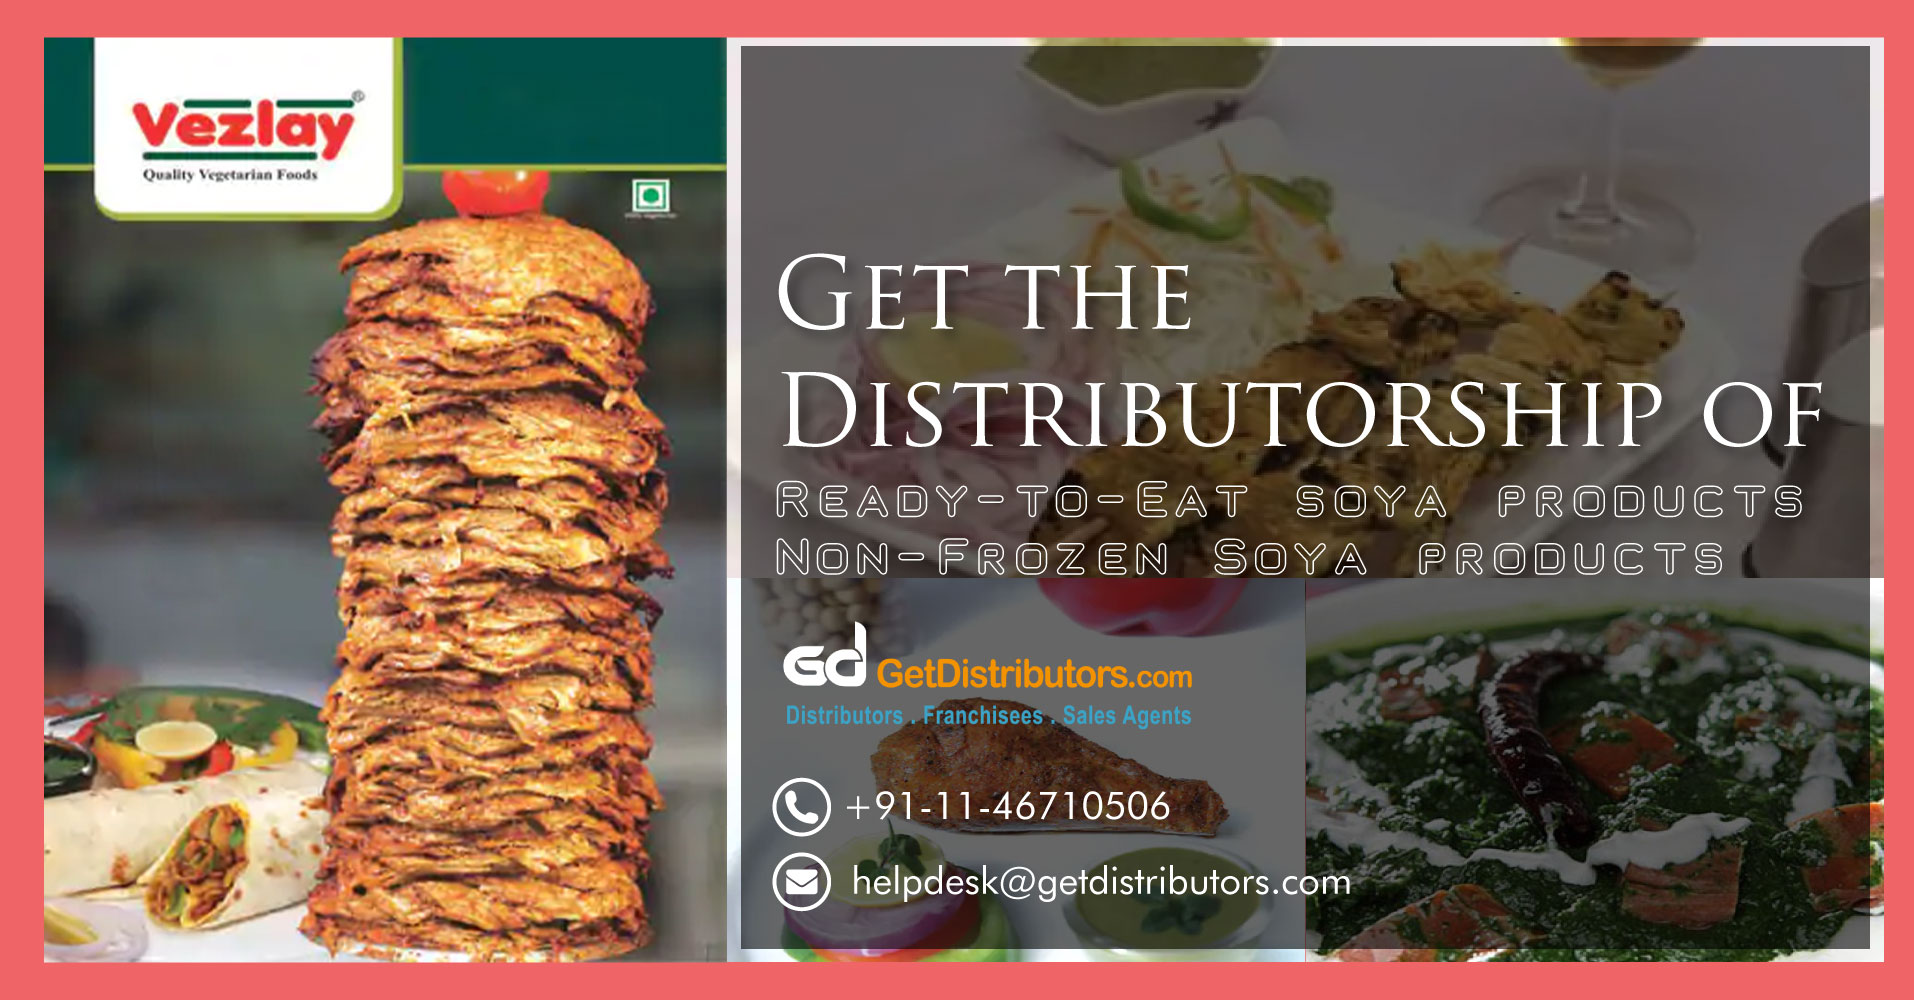 The Distributorship Of Ready To Eat Soya Products